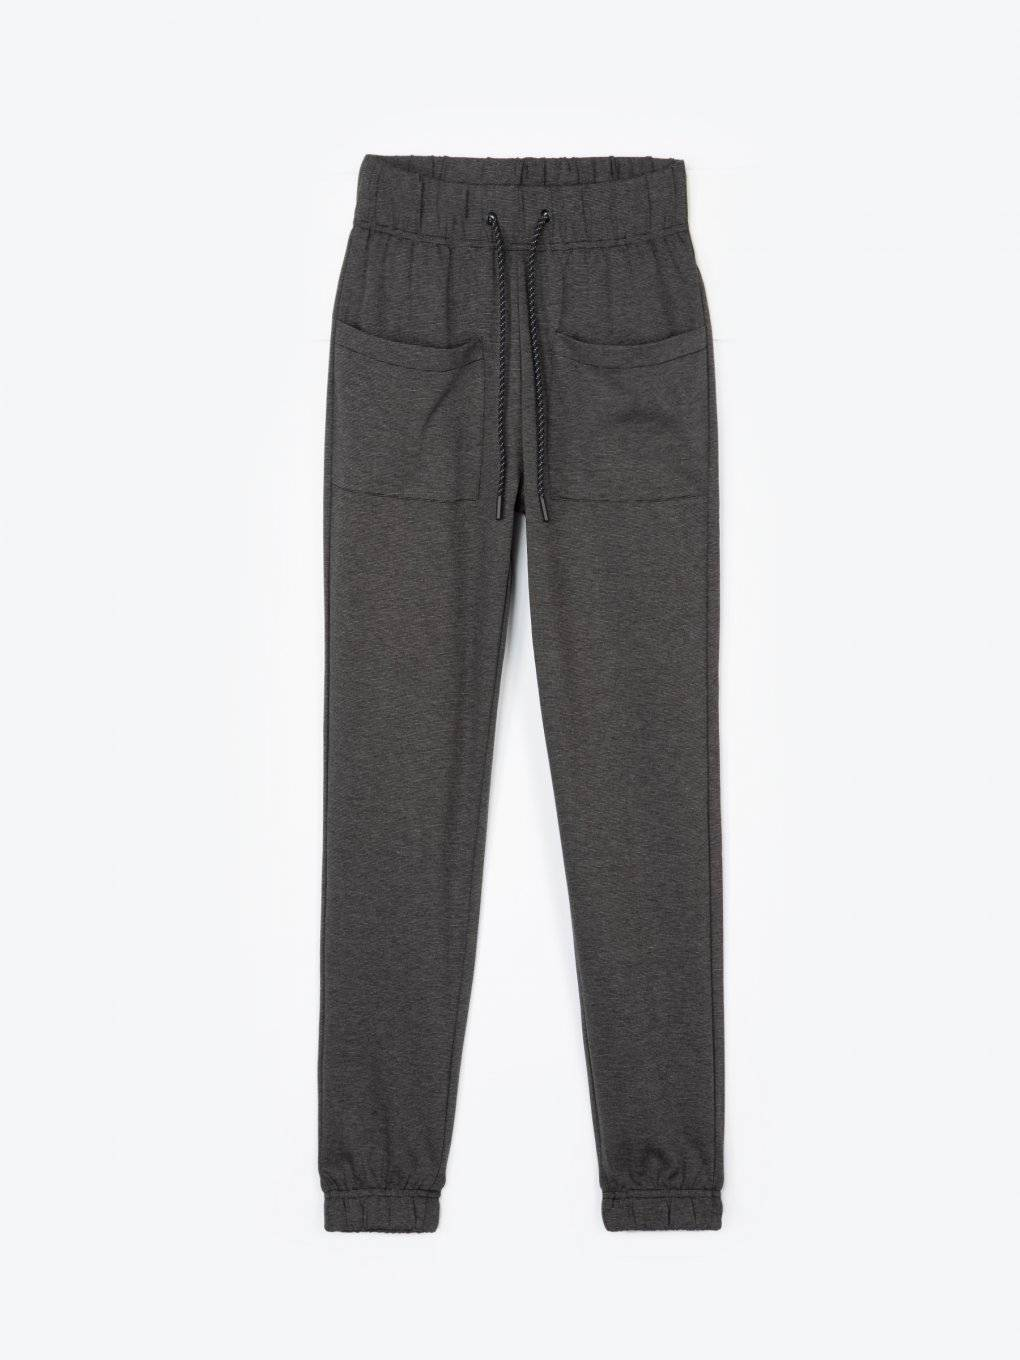 Sweatpants with large pockets